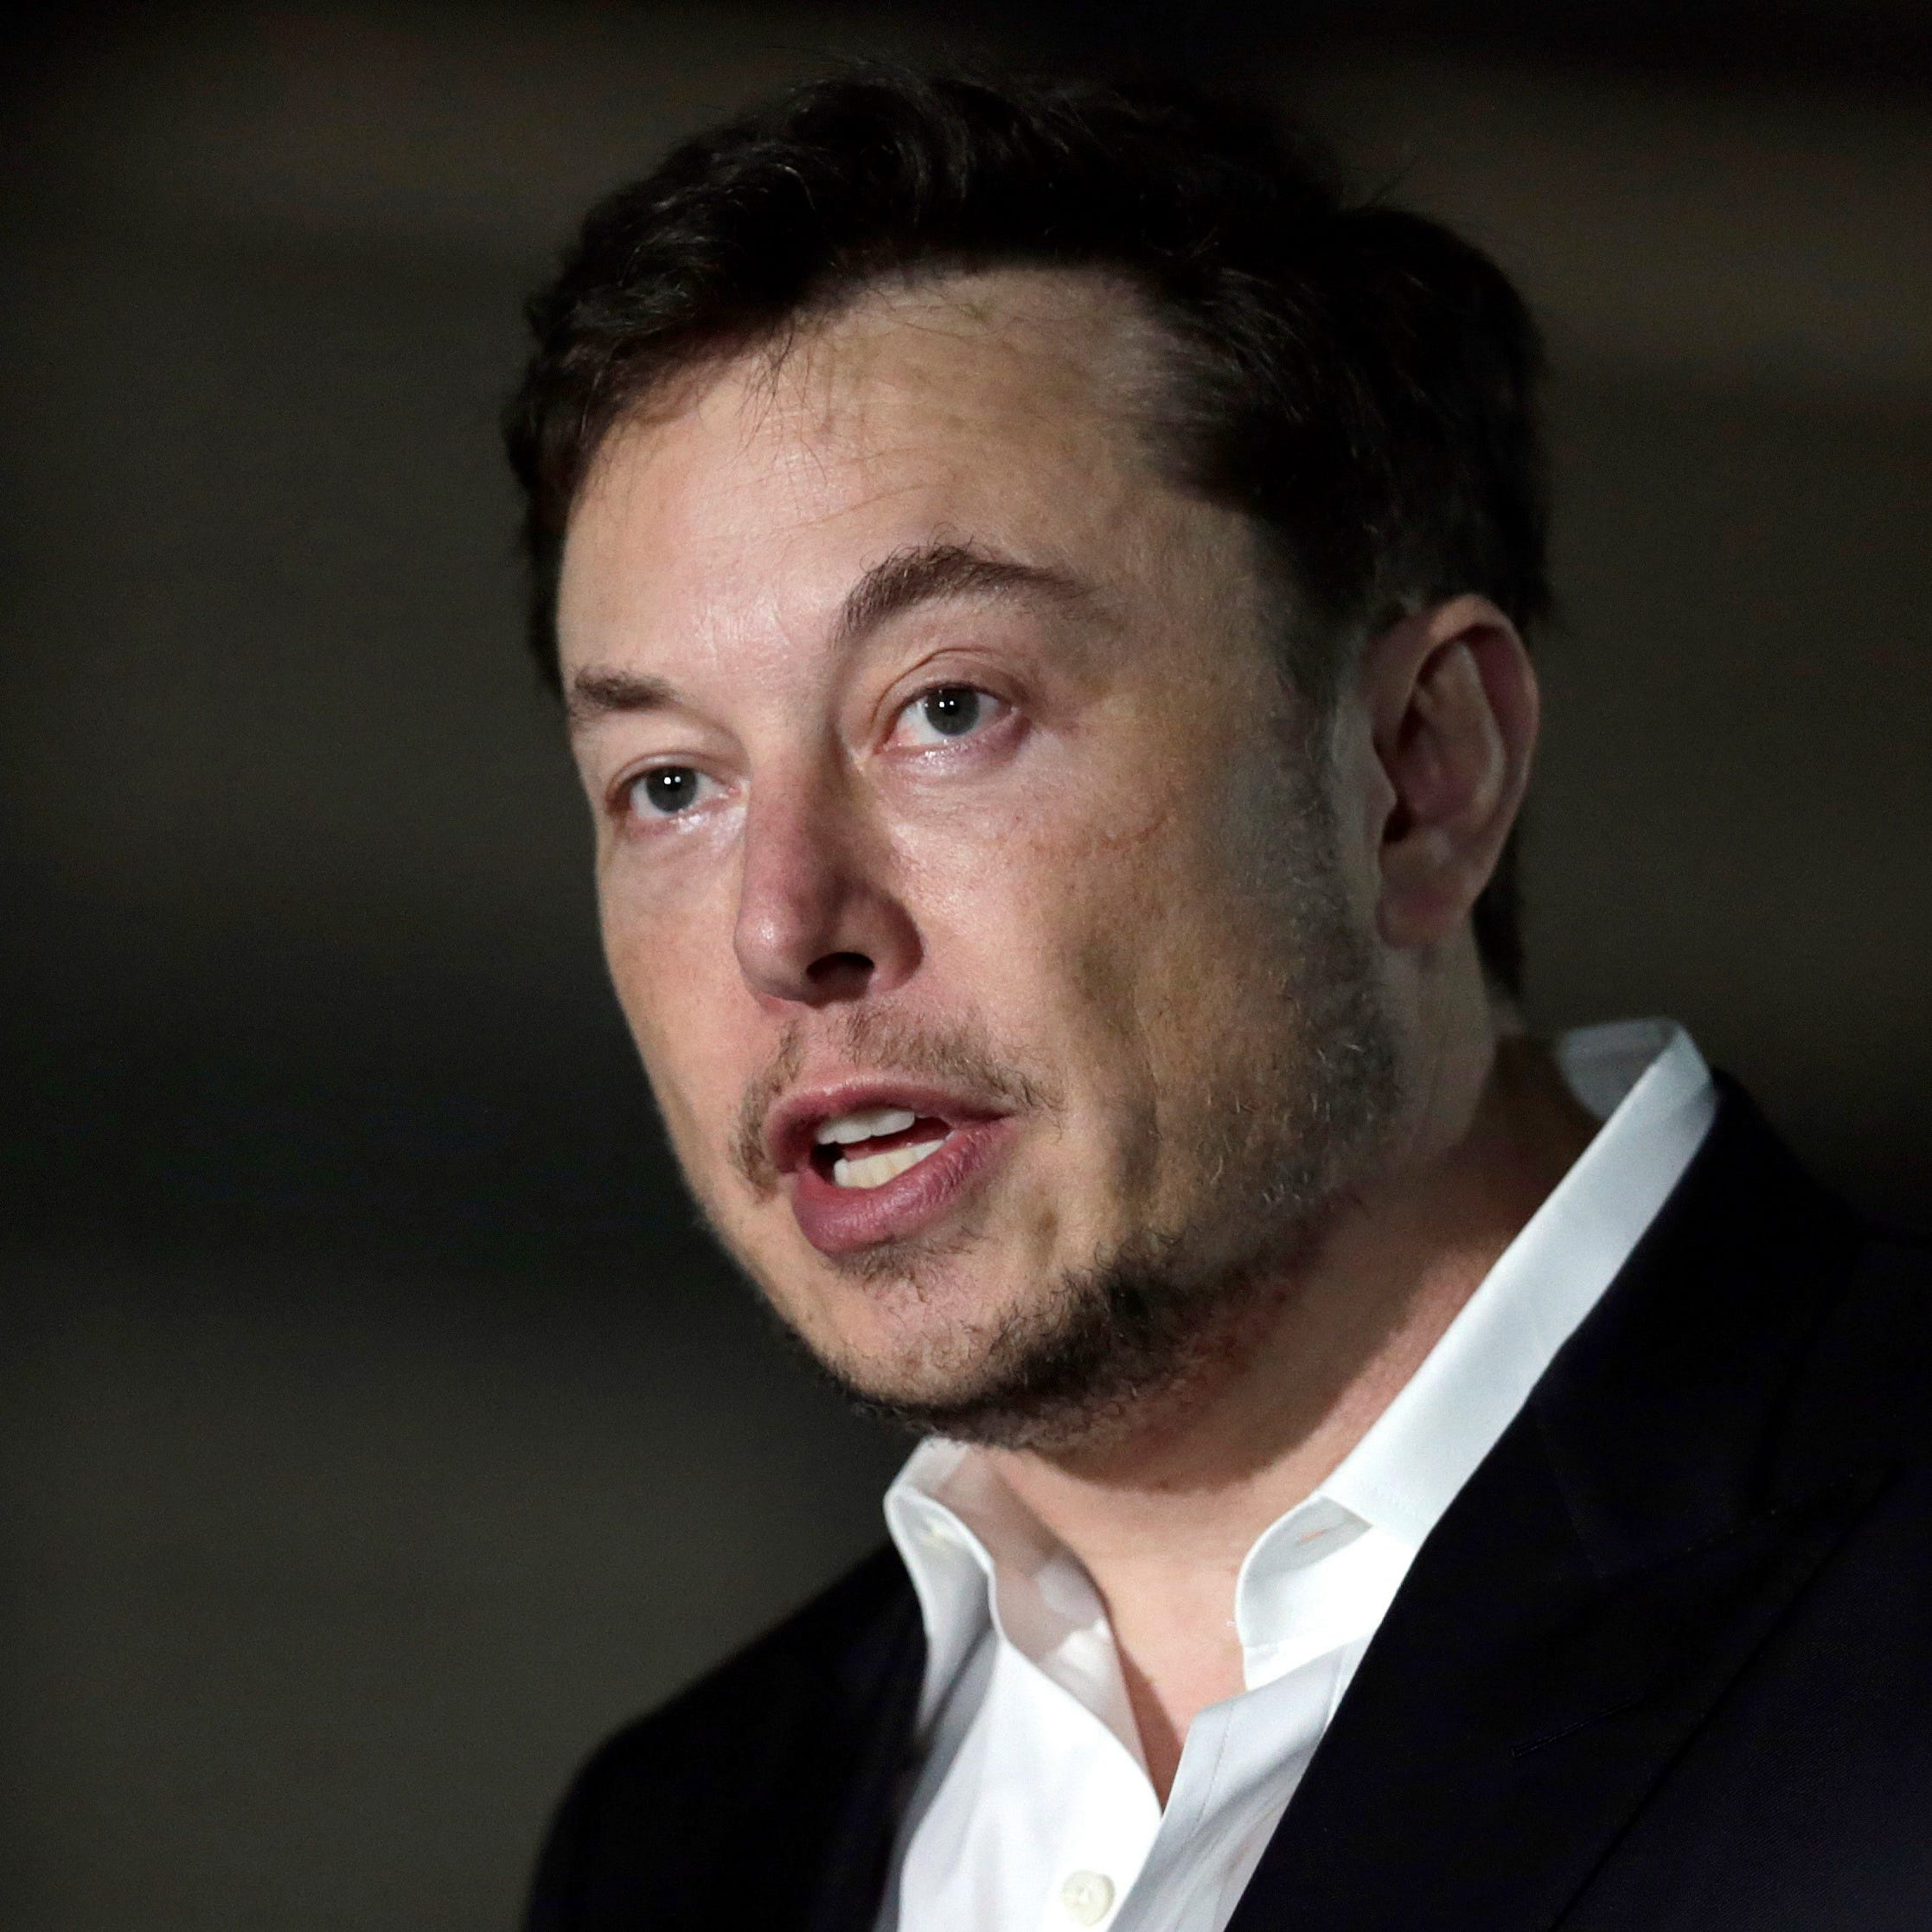 Attorneys tell a federal judge that Tesla CEO Elon Musk shouldn't be found in contempt because he didn't violate a securities fraud settlement.